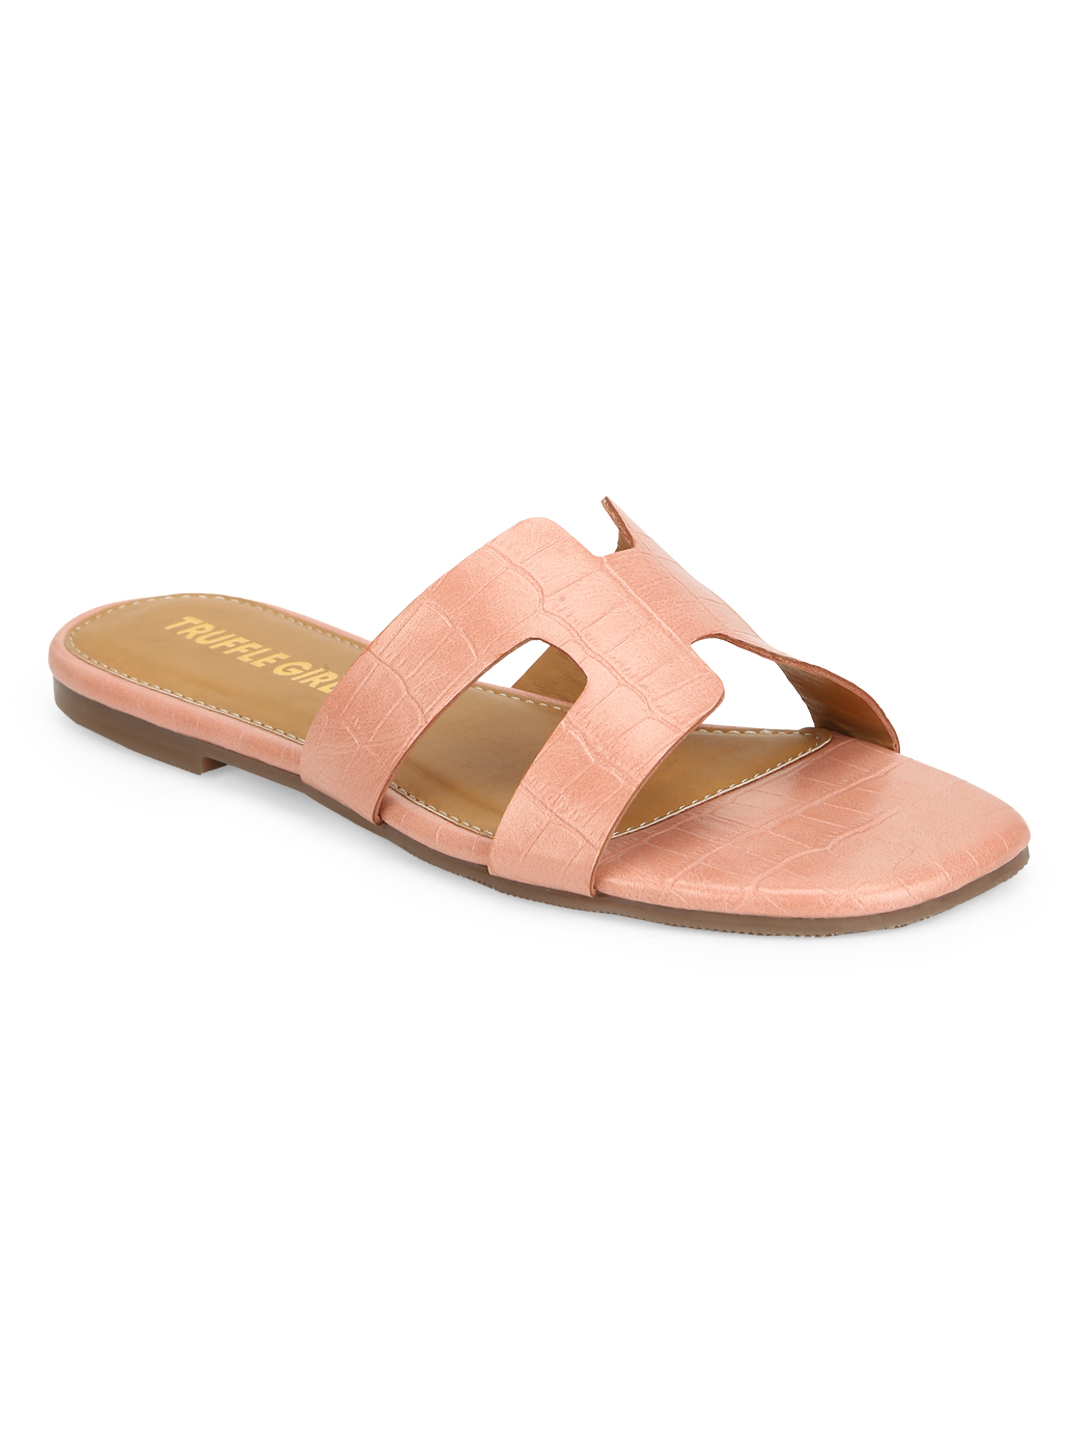 Truffle Collection | Truffle Collection Pink Nude Croc PU Slip On Slides